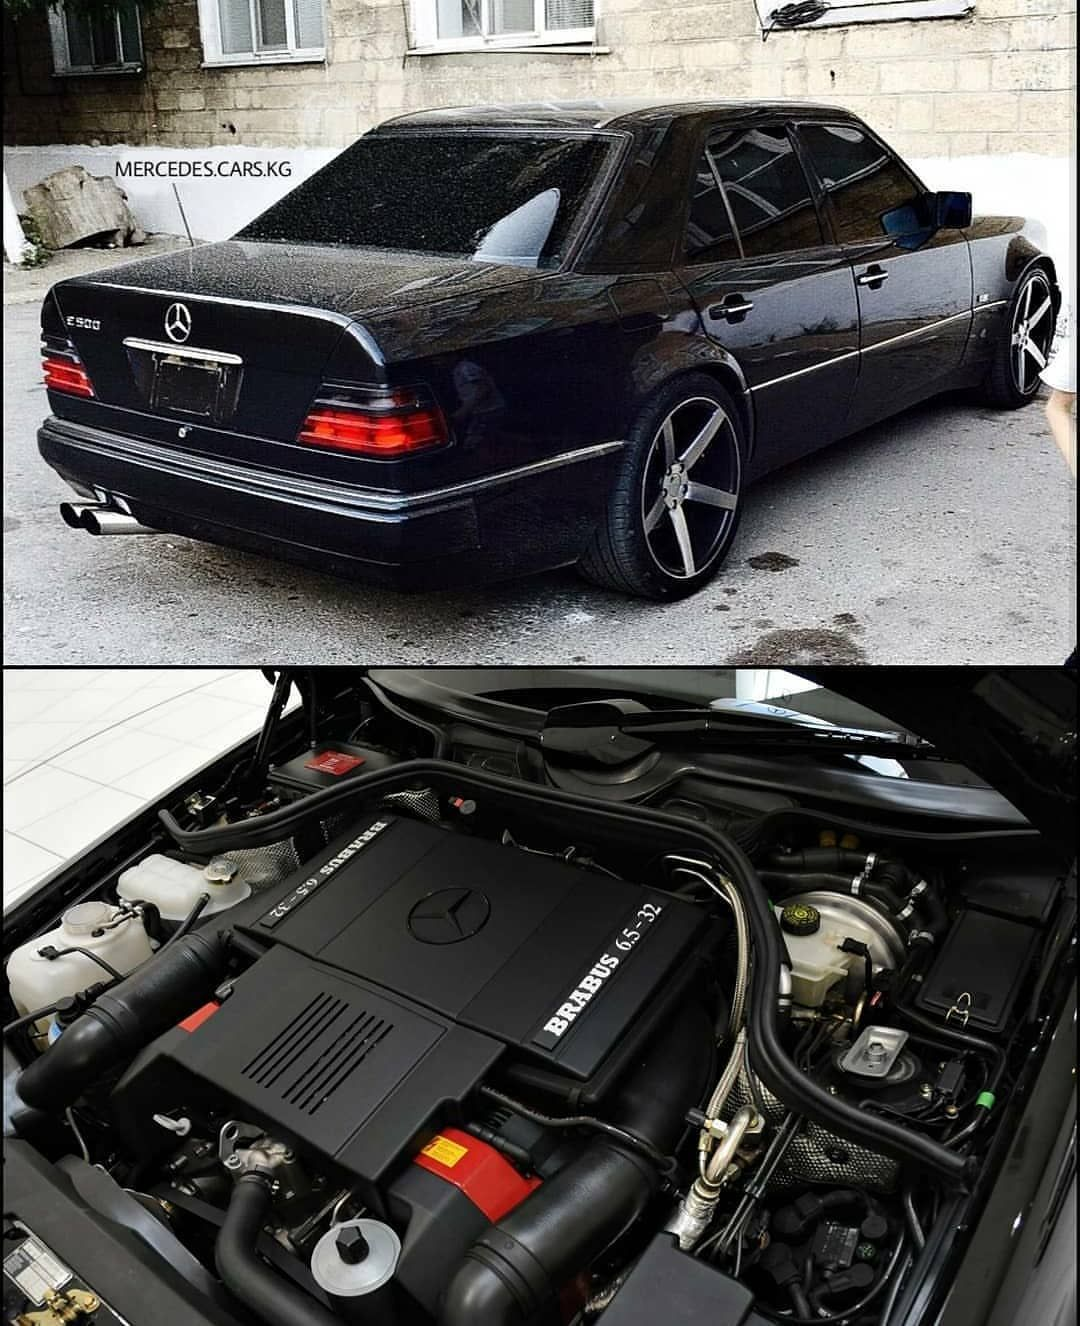 W124 Not a fan of the wheels, but the engine 😚 | Transport